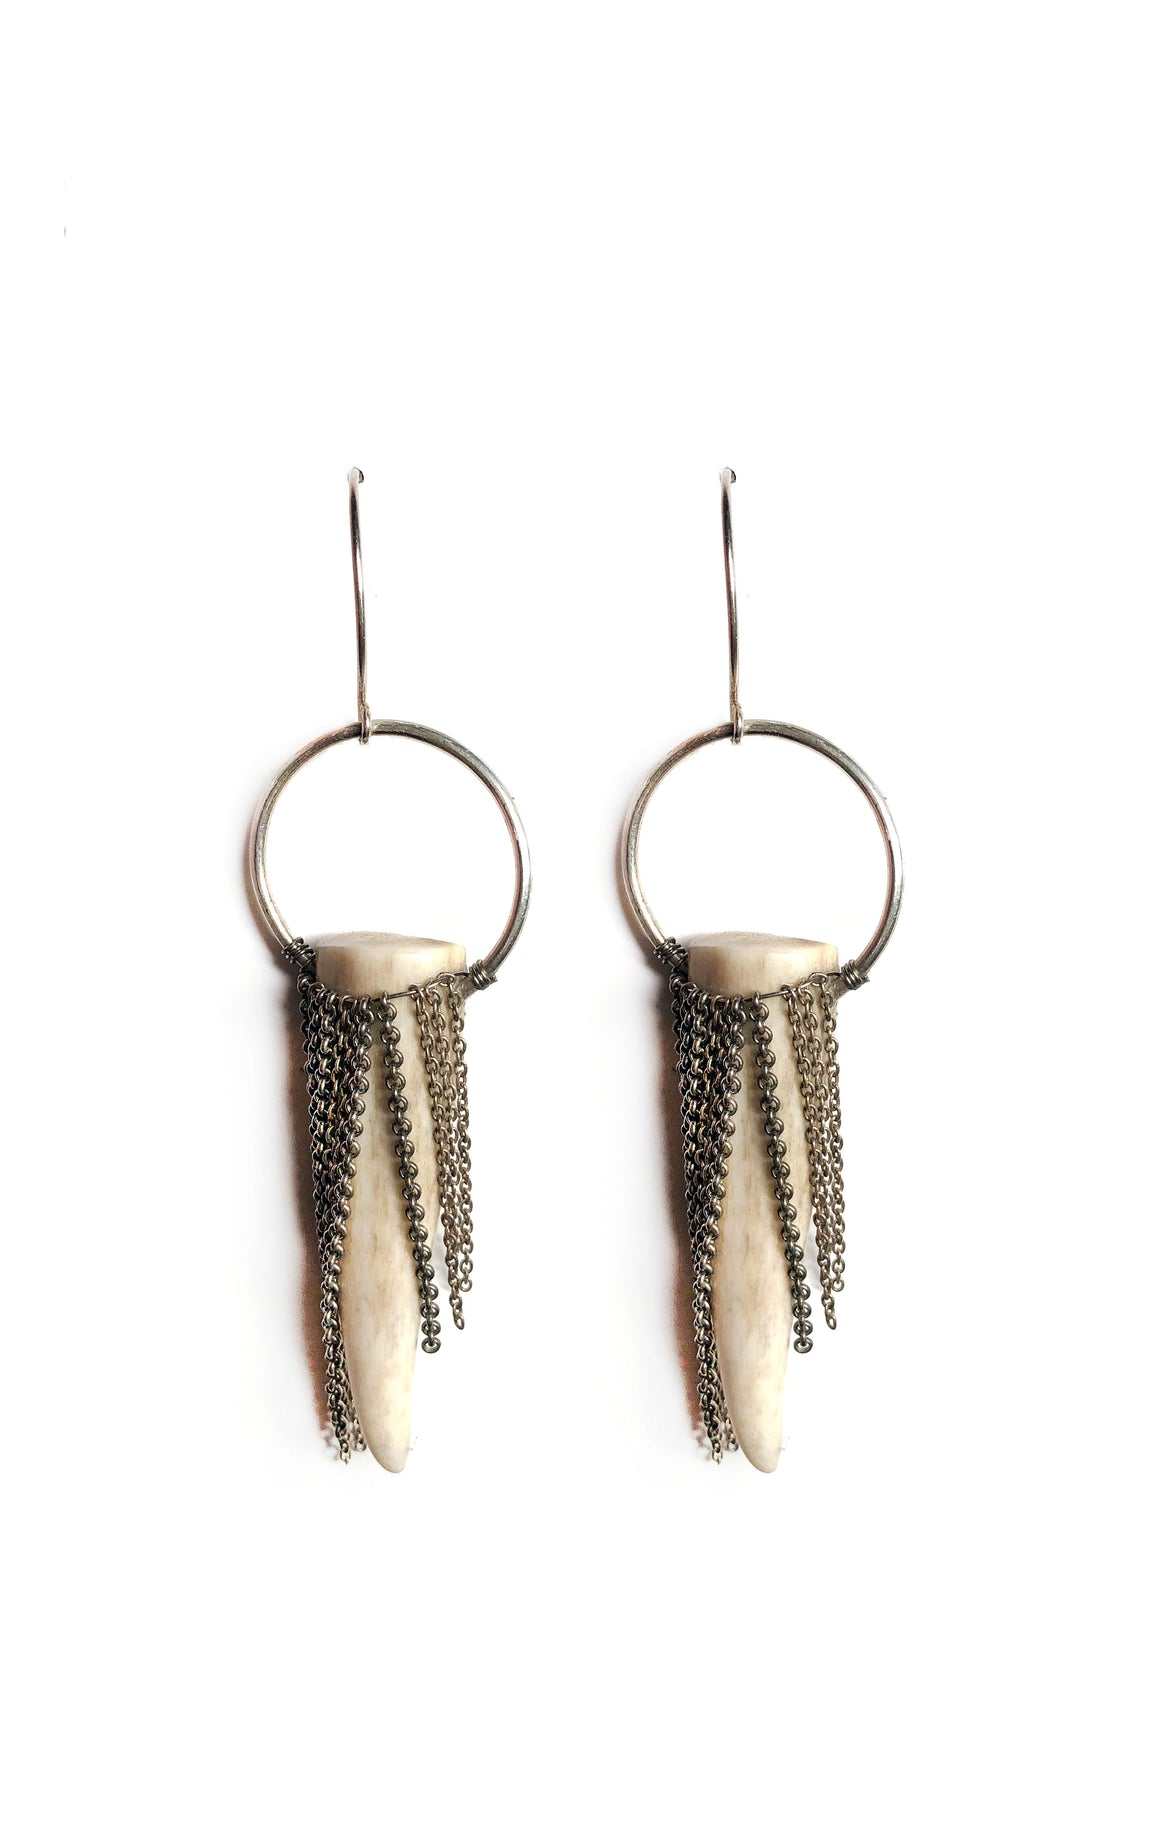 Bone Fringe Earrings